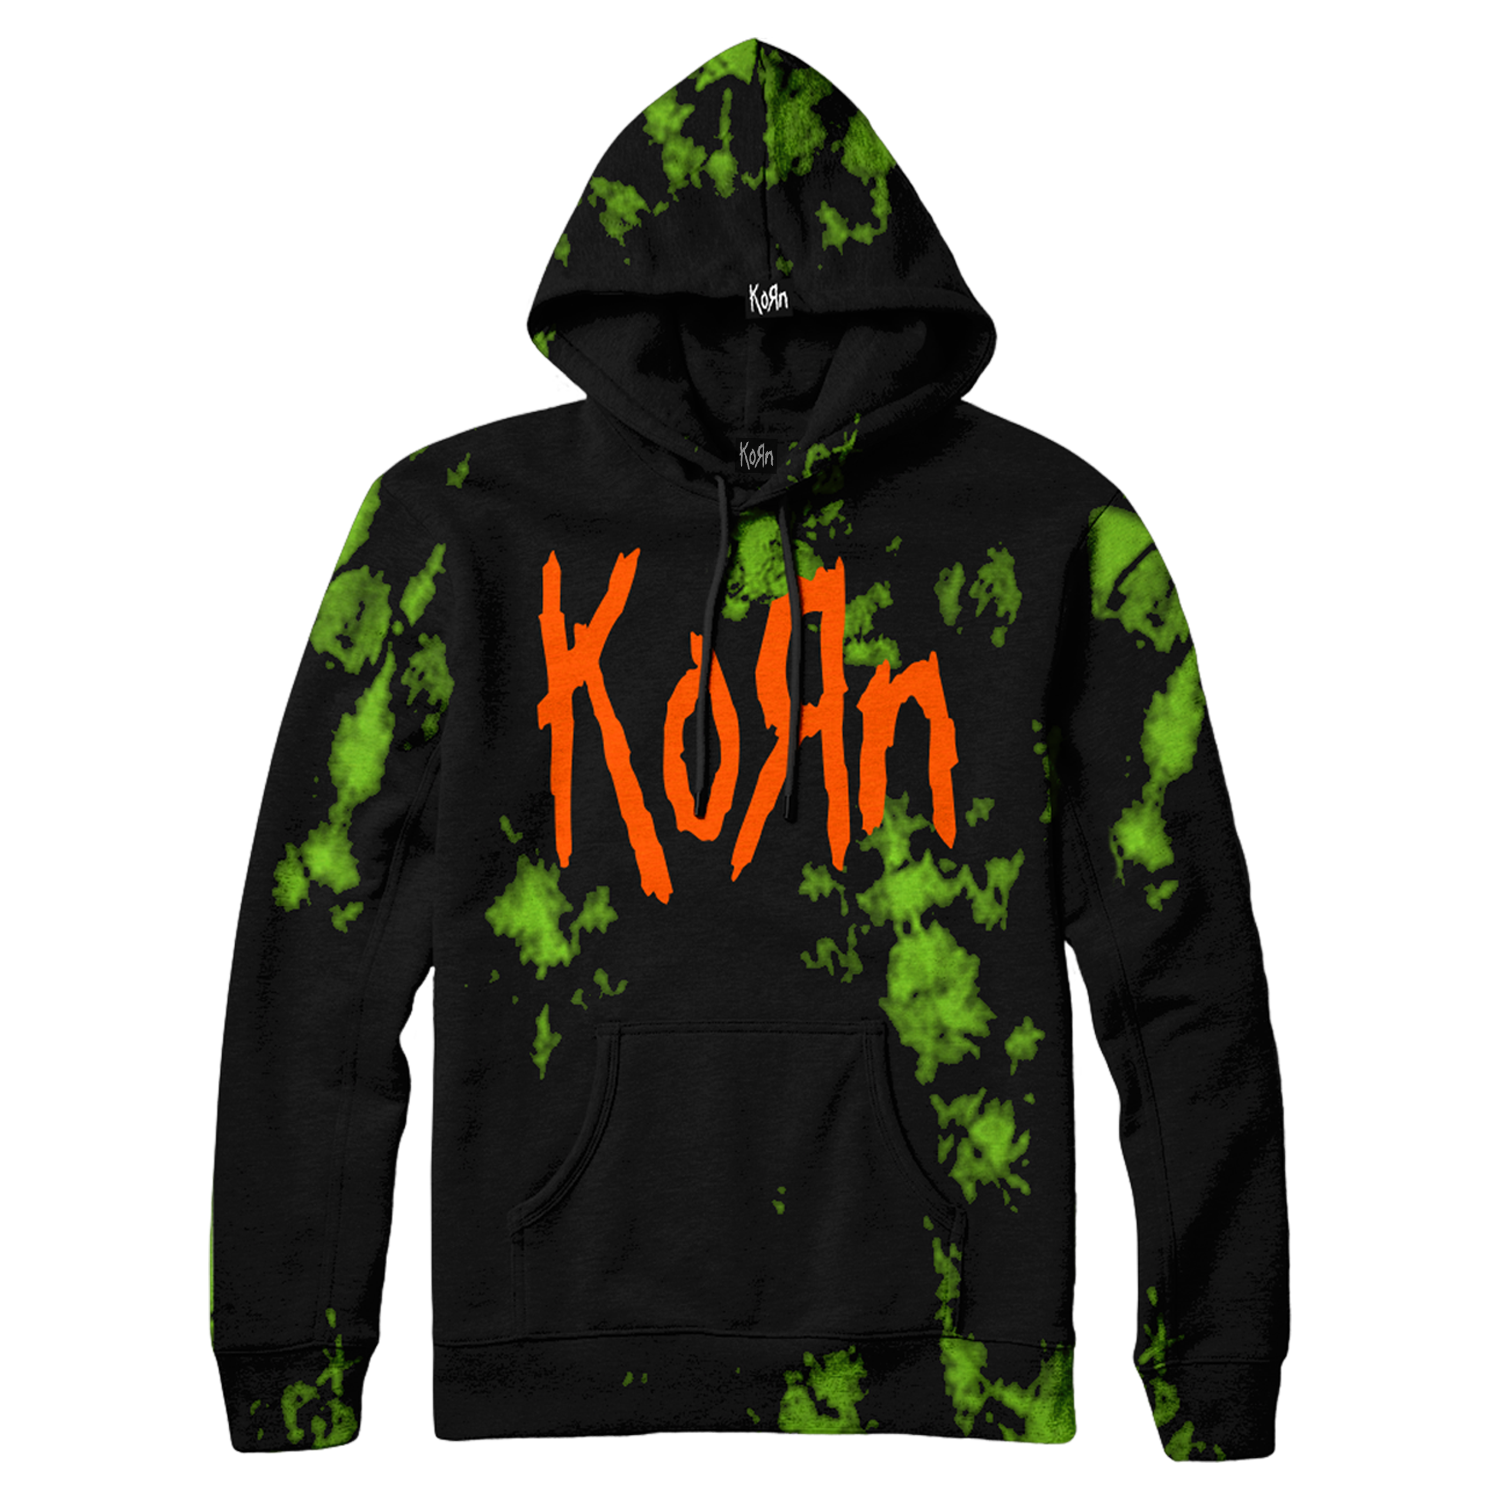 Relax and unwind with this Korn Official / Limited Edition Slime Hoodie! Green and black custom crystal wash hoodie featuring the legendary Korn Logo printed on the front in orange ink. Exclusive to kornlimited.com